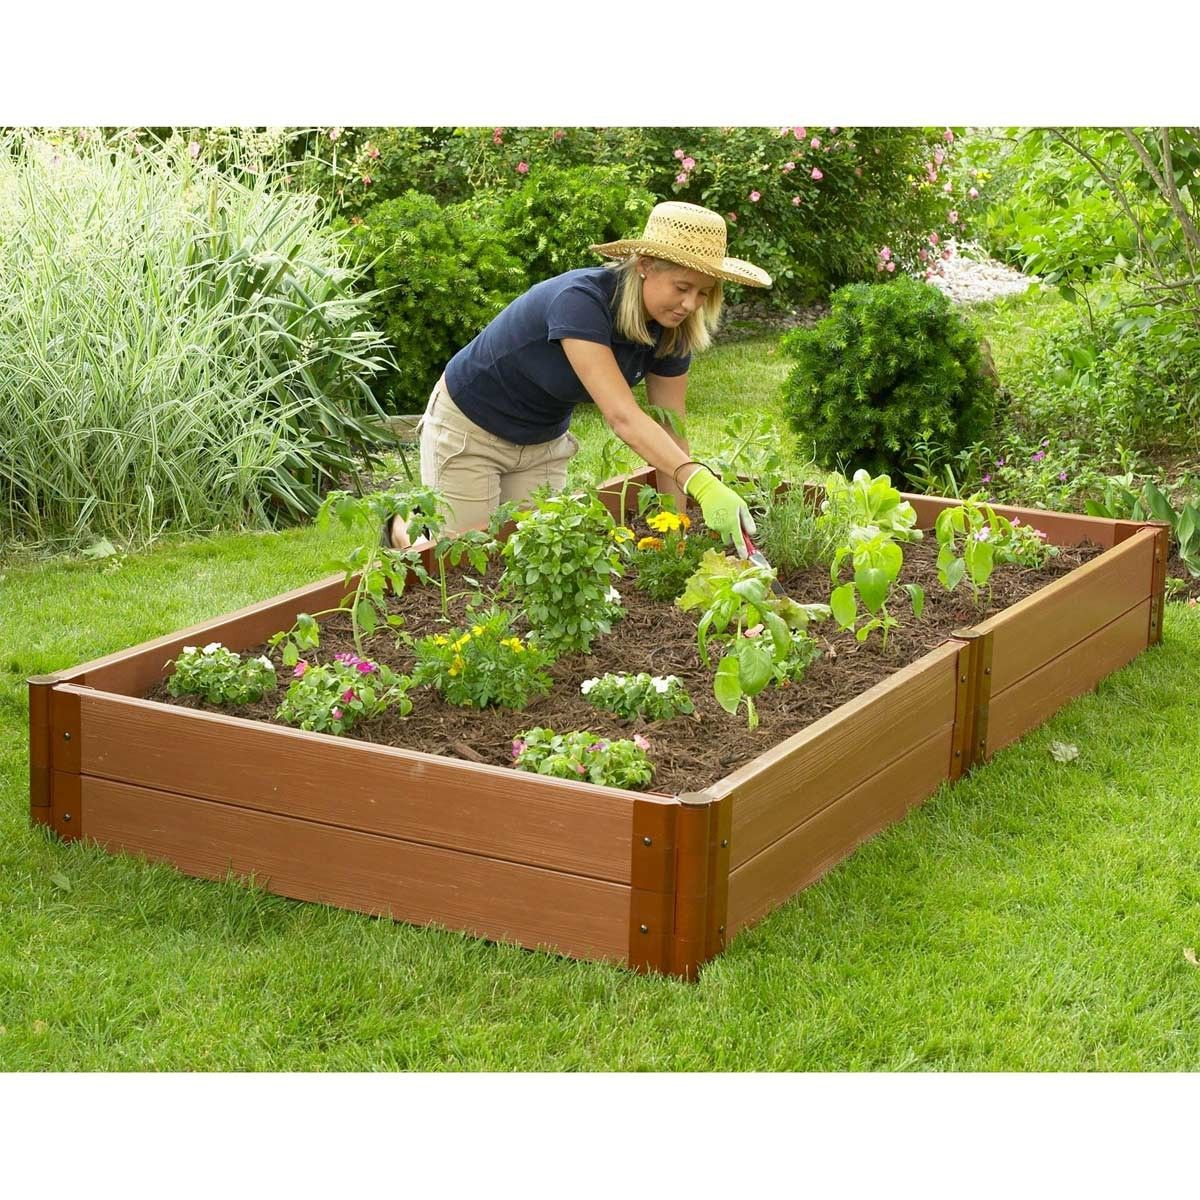 Greenland gardener raised bed garden kit - 1000 Images About Raised Garden On Pinterest Gardens Raised Beds And Elevated Planter Box